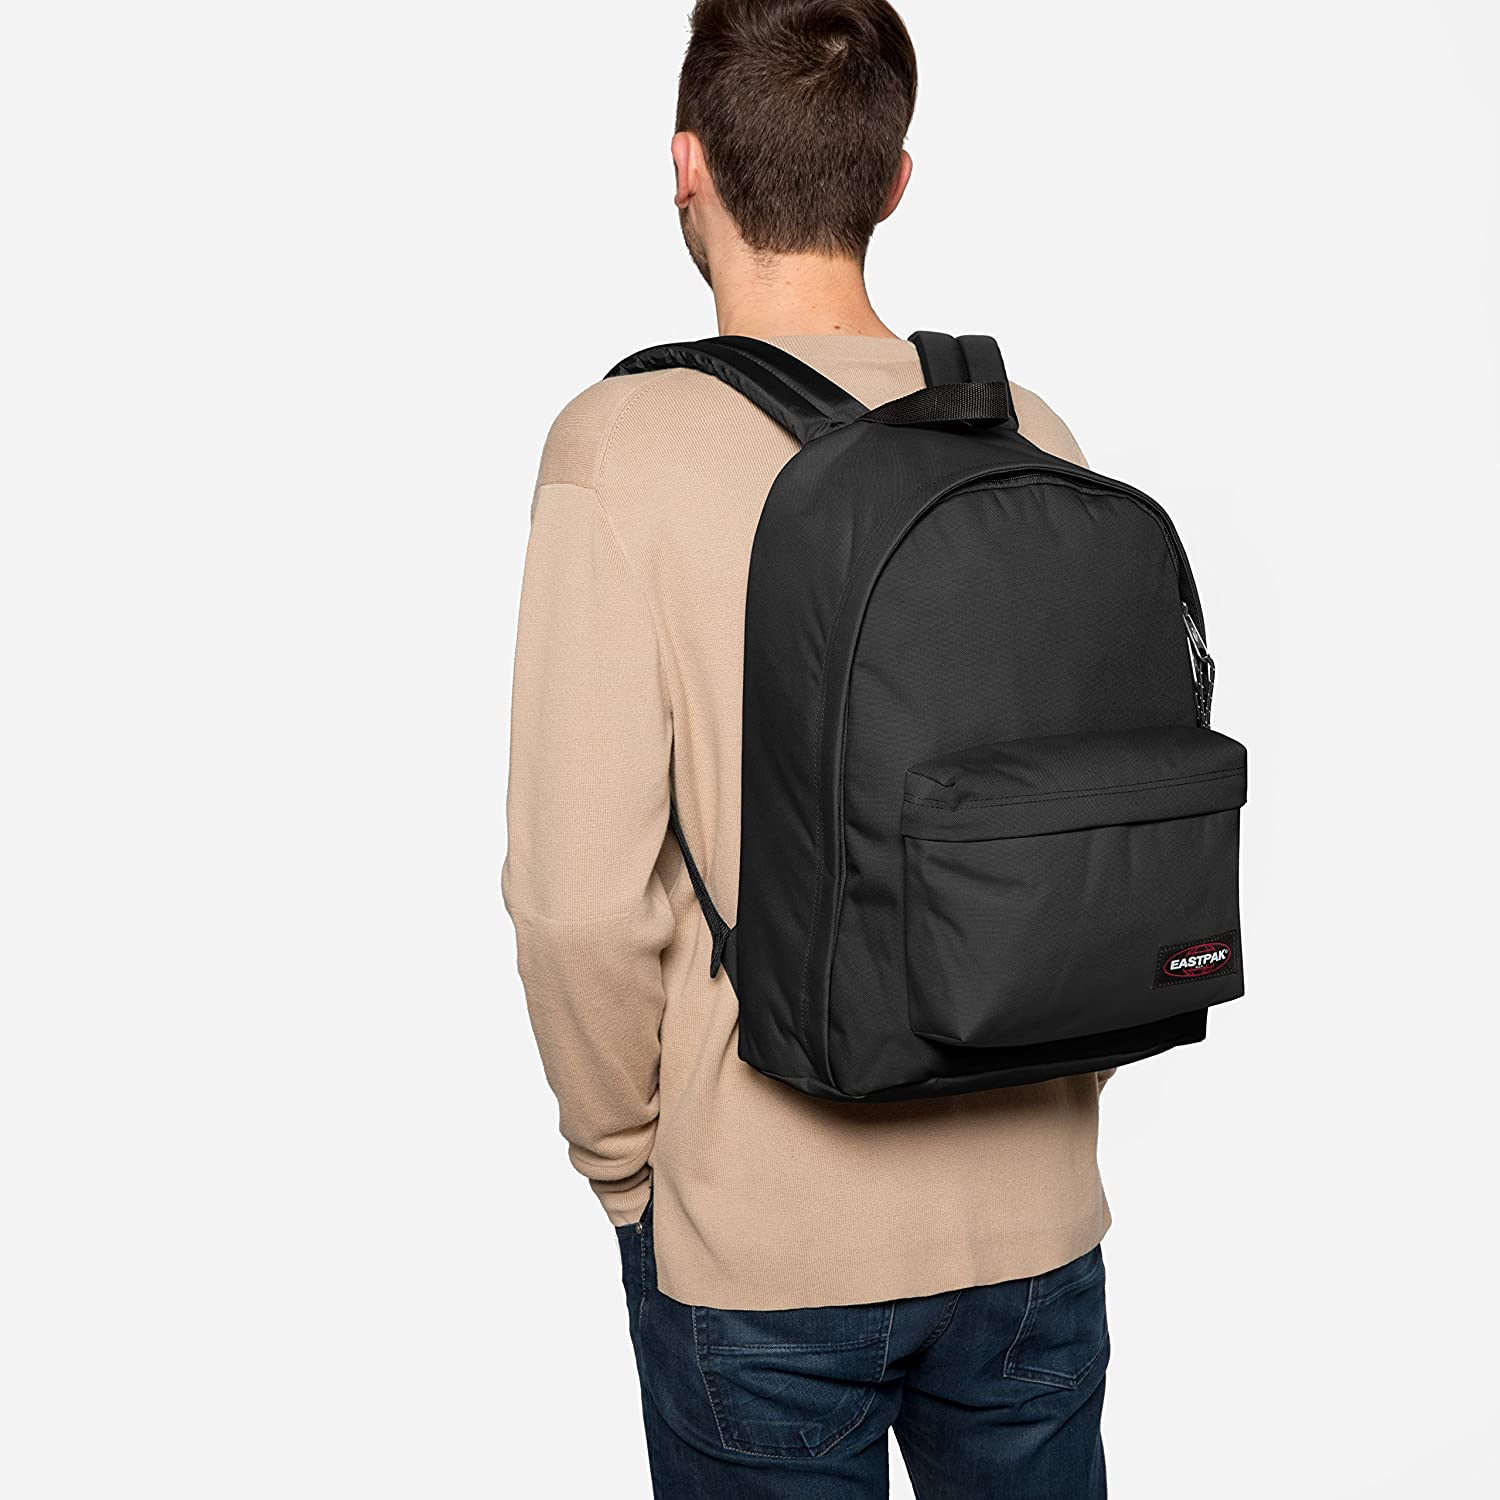 424ba18d039 Amazon.com: Eastpak Men's Out Of Office Backpack, Black, One Size: Toys &  Games